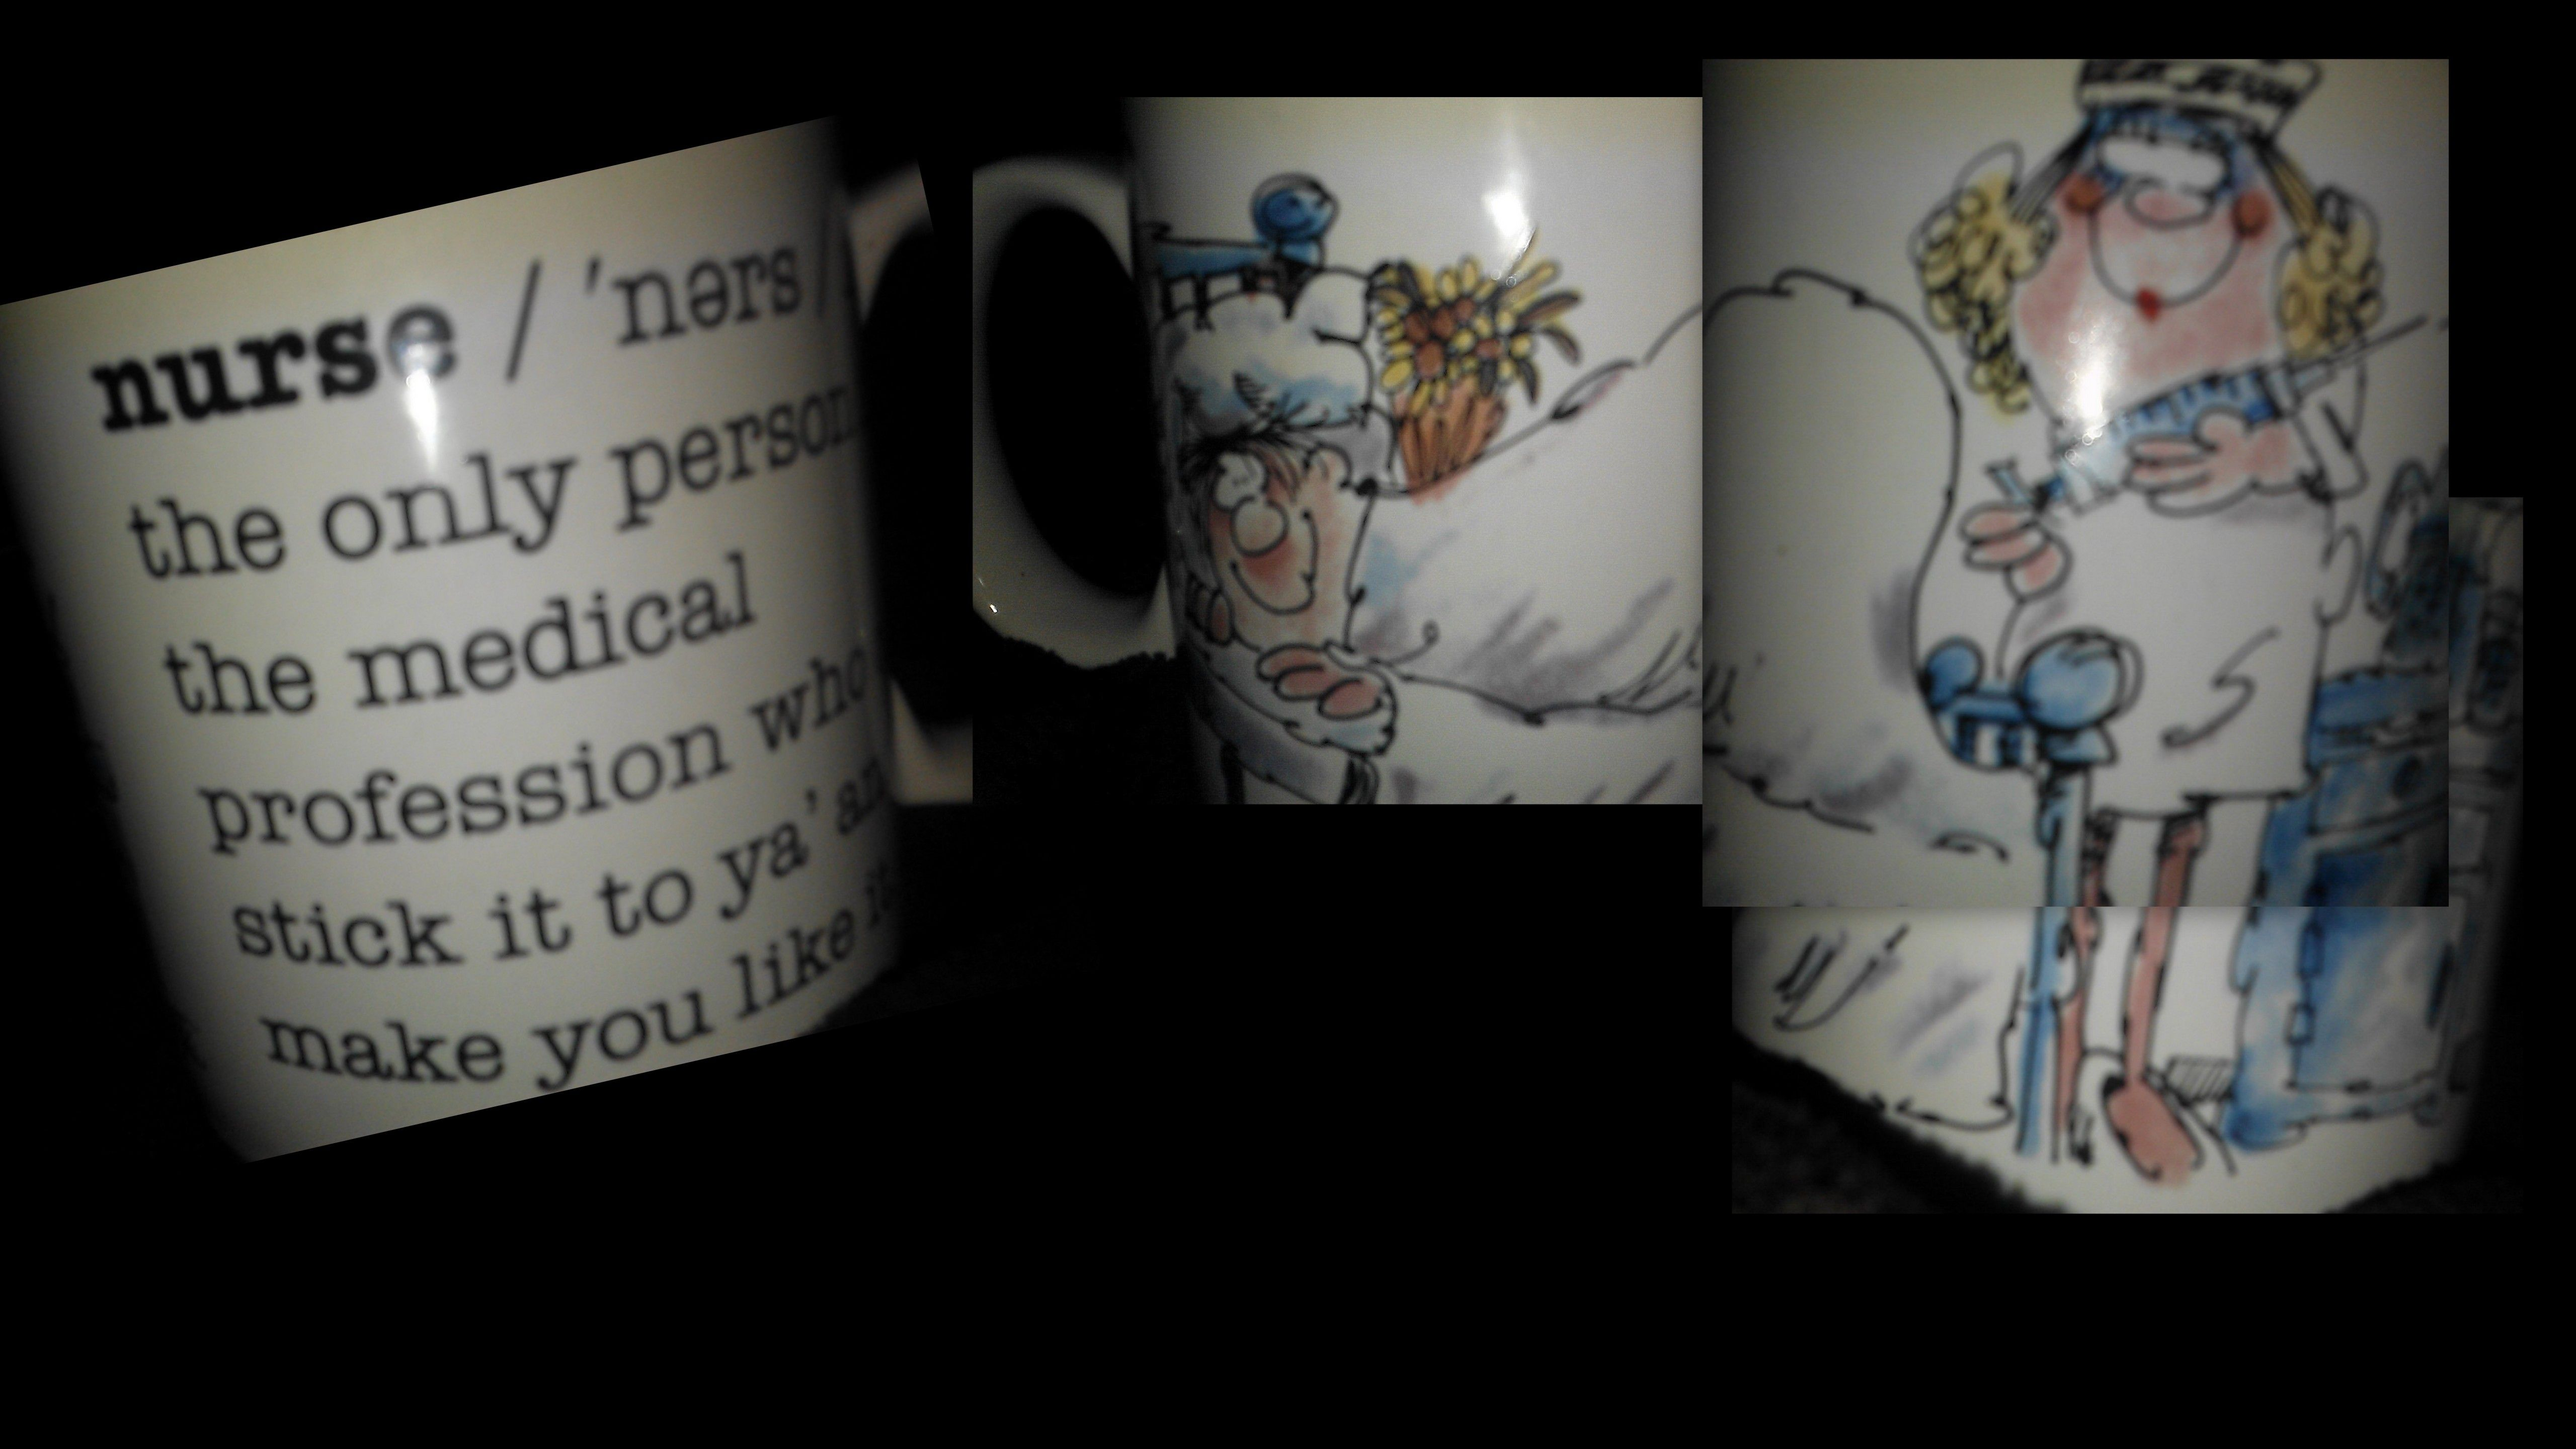 My old nurse mug:  Nurse:  The only person in the medical profession that can stick it you ya and make you like it.